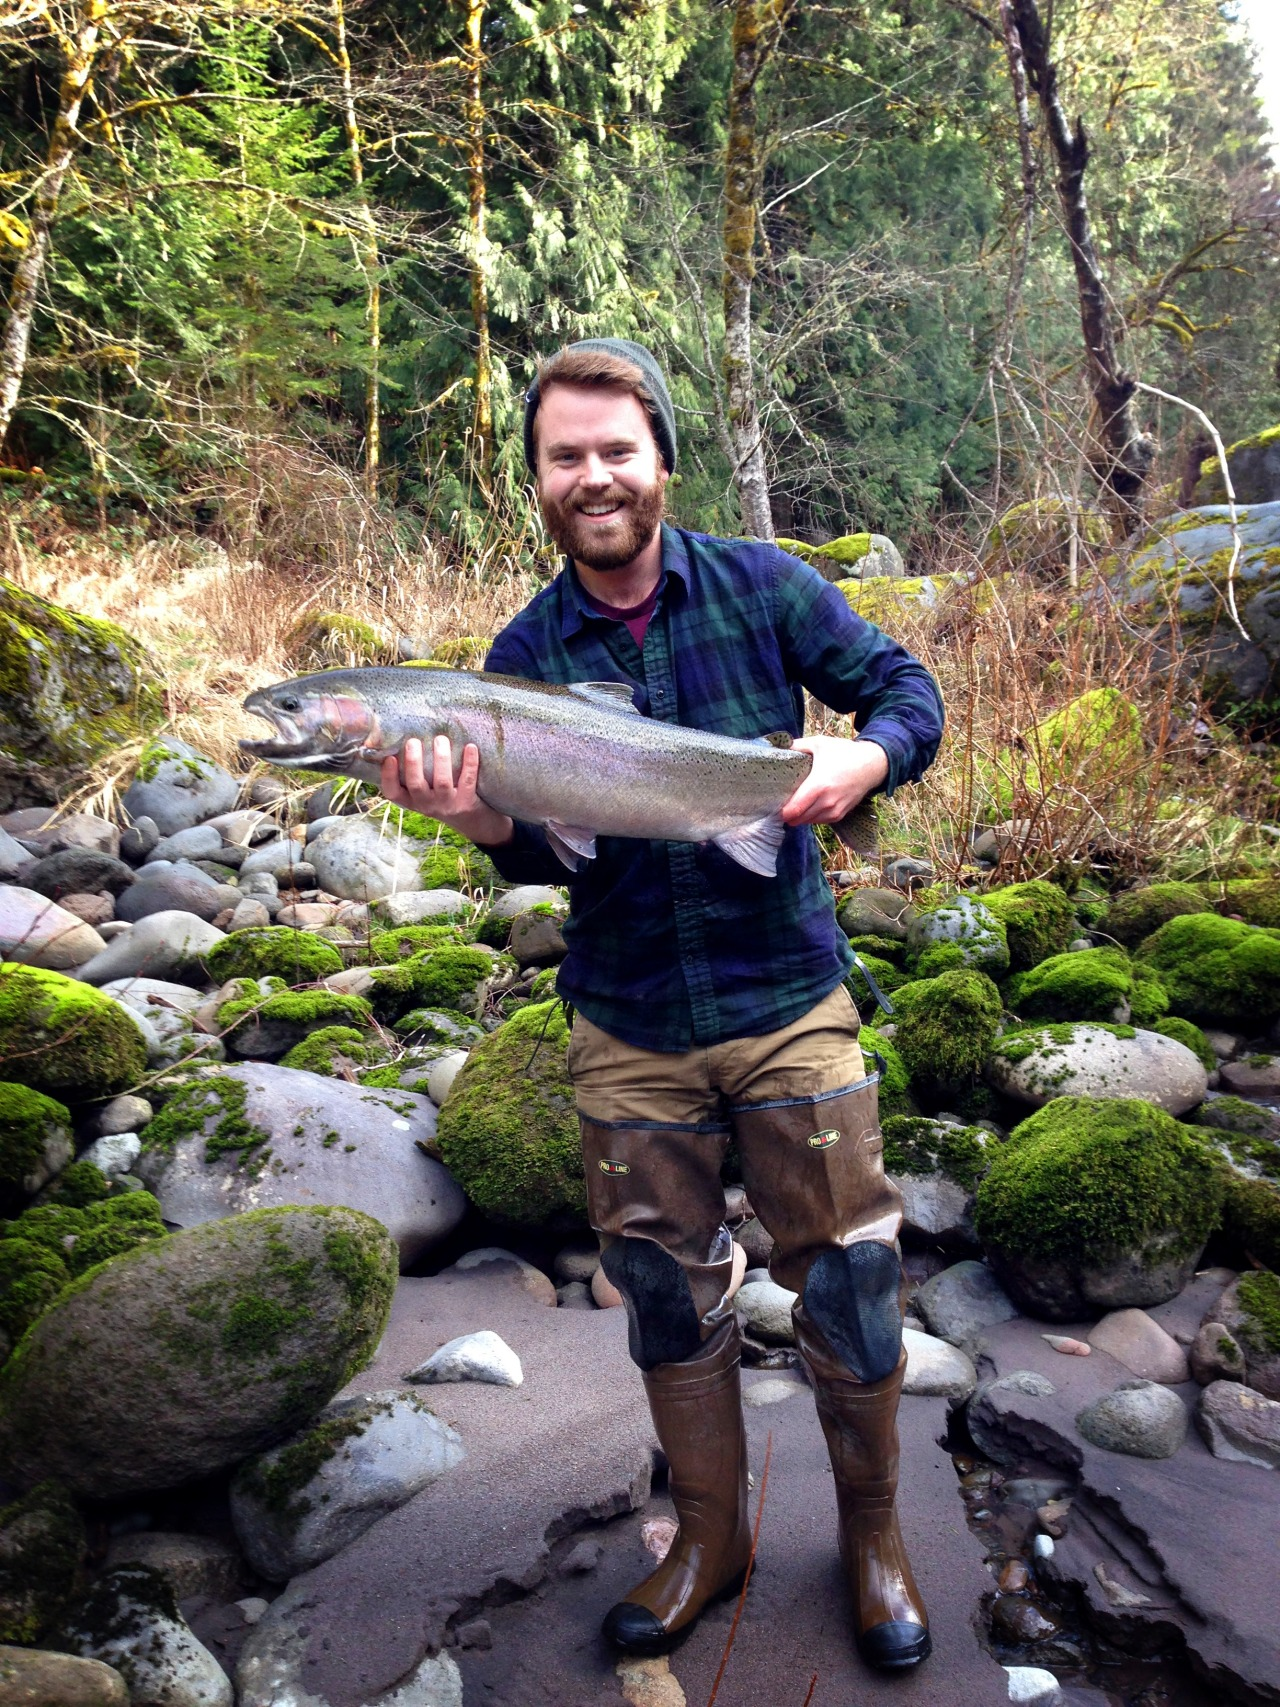 This weekend I caught a 14lb Steelhead in the Sandy River in Oregon! Most incredible experience of my life.